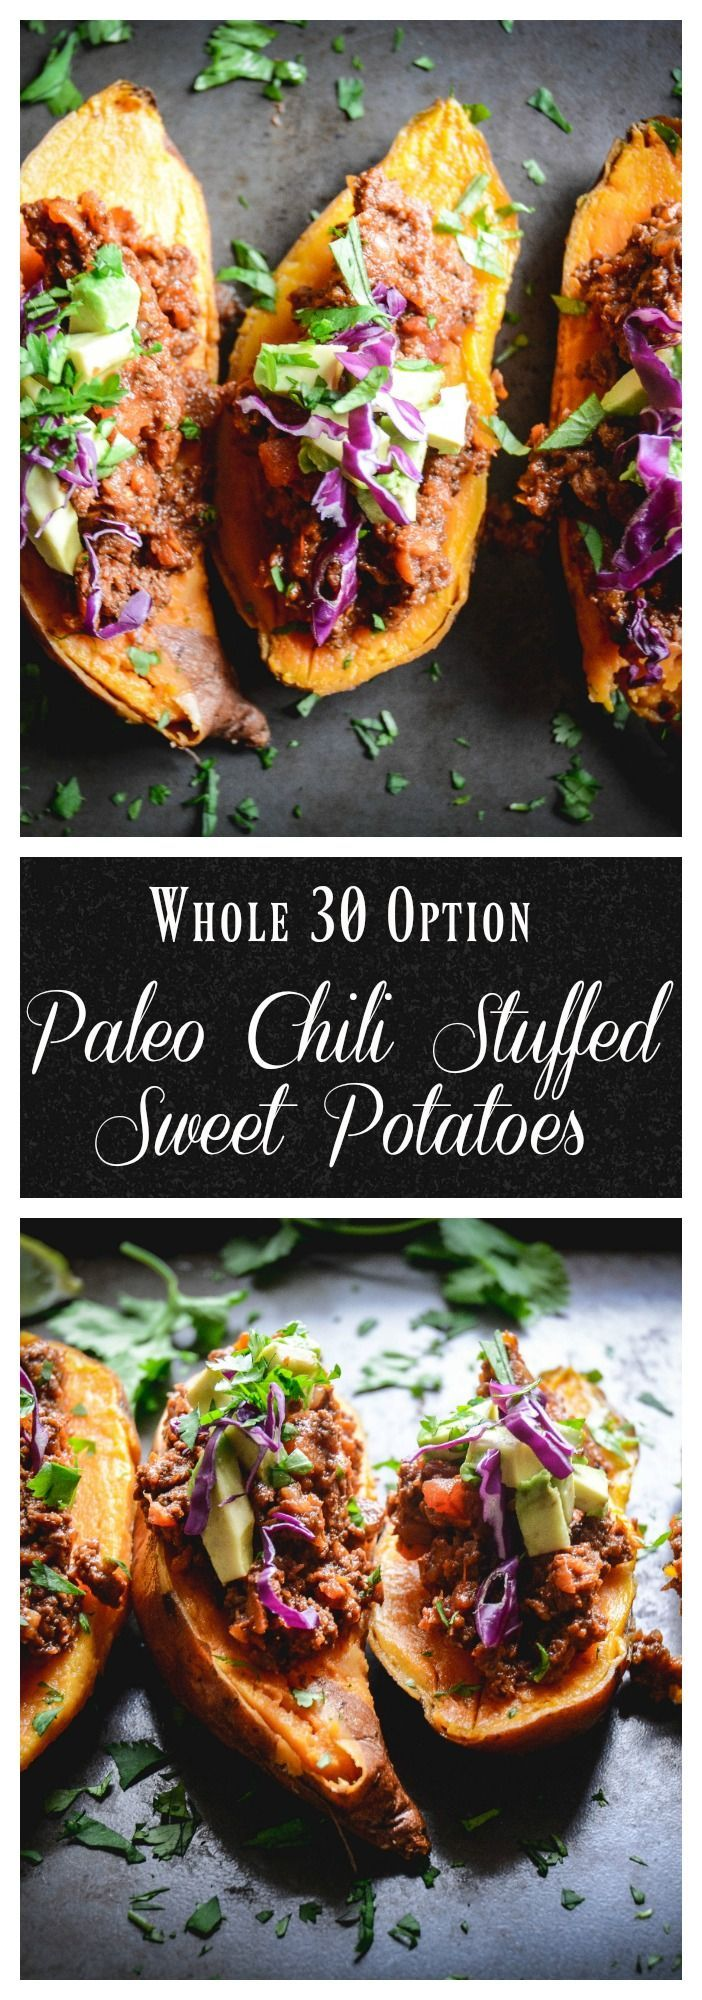 Chili stuffed sweet potatoes are an easy, satisfying dinner and a twist on the traditional sweet potato chili. These are paleo and whole 30 as well! #chili, #sweetpotato, #dinner, #paleo, #whole30